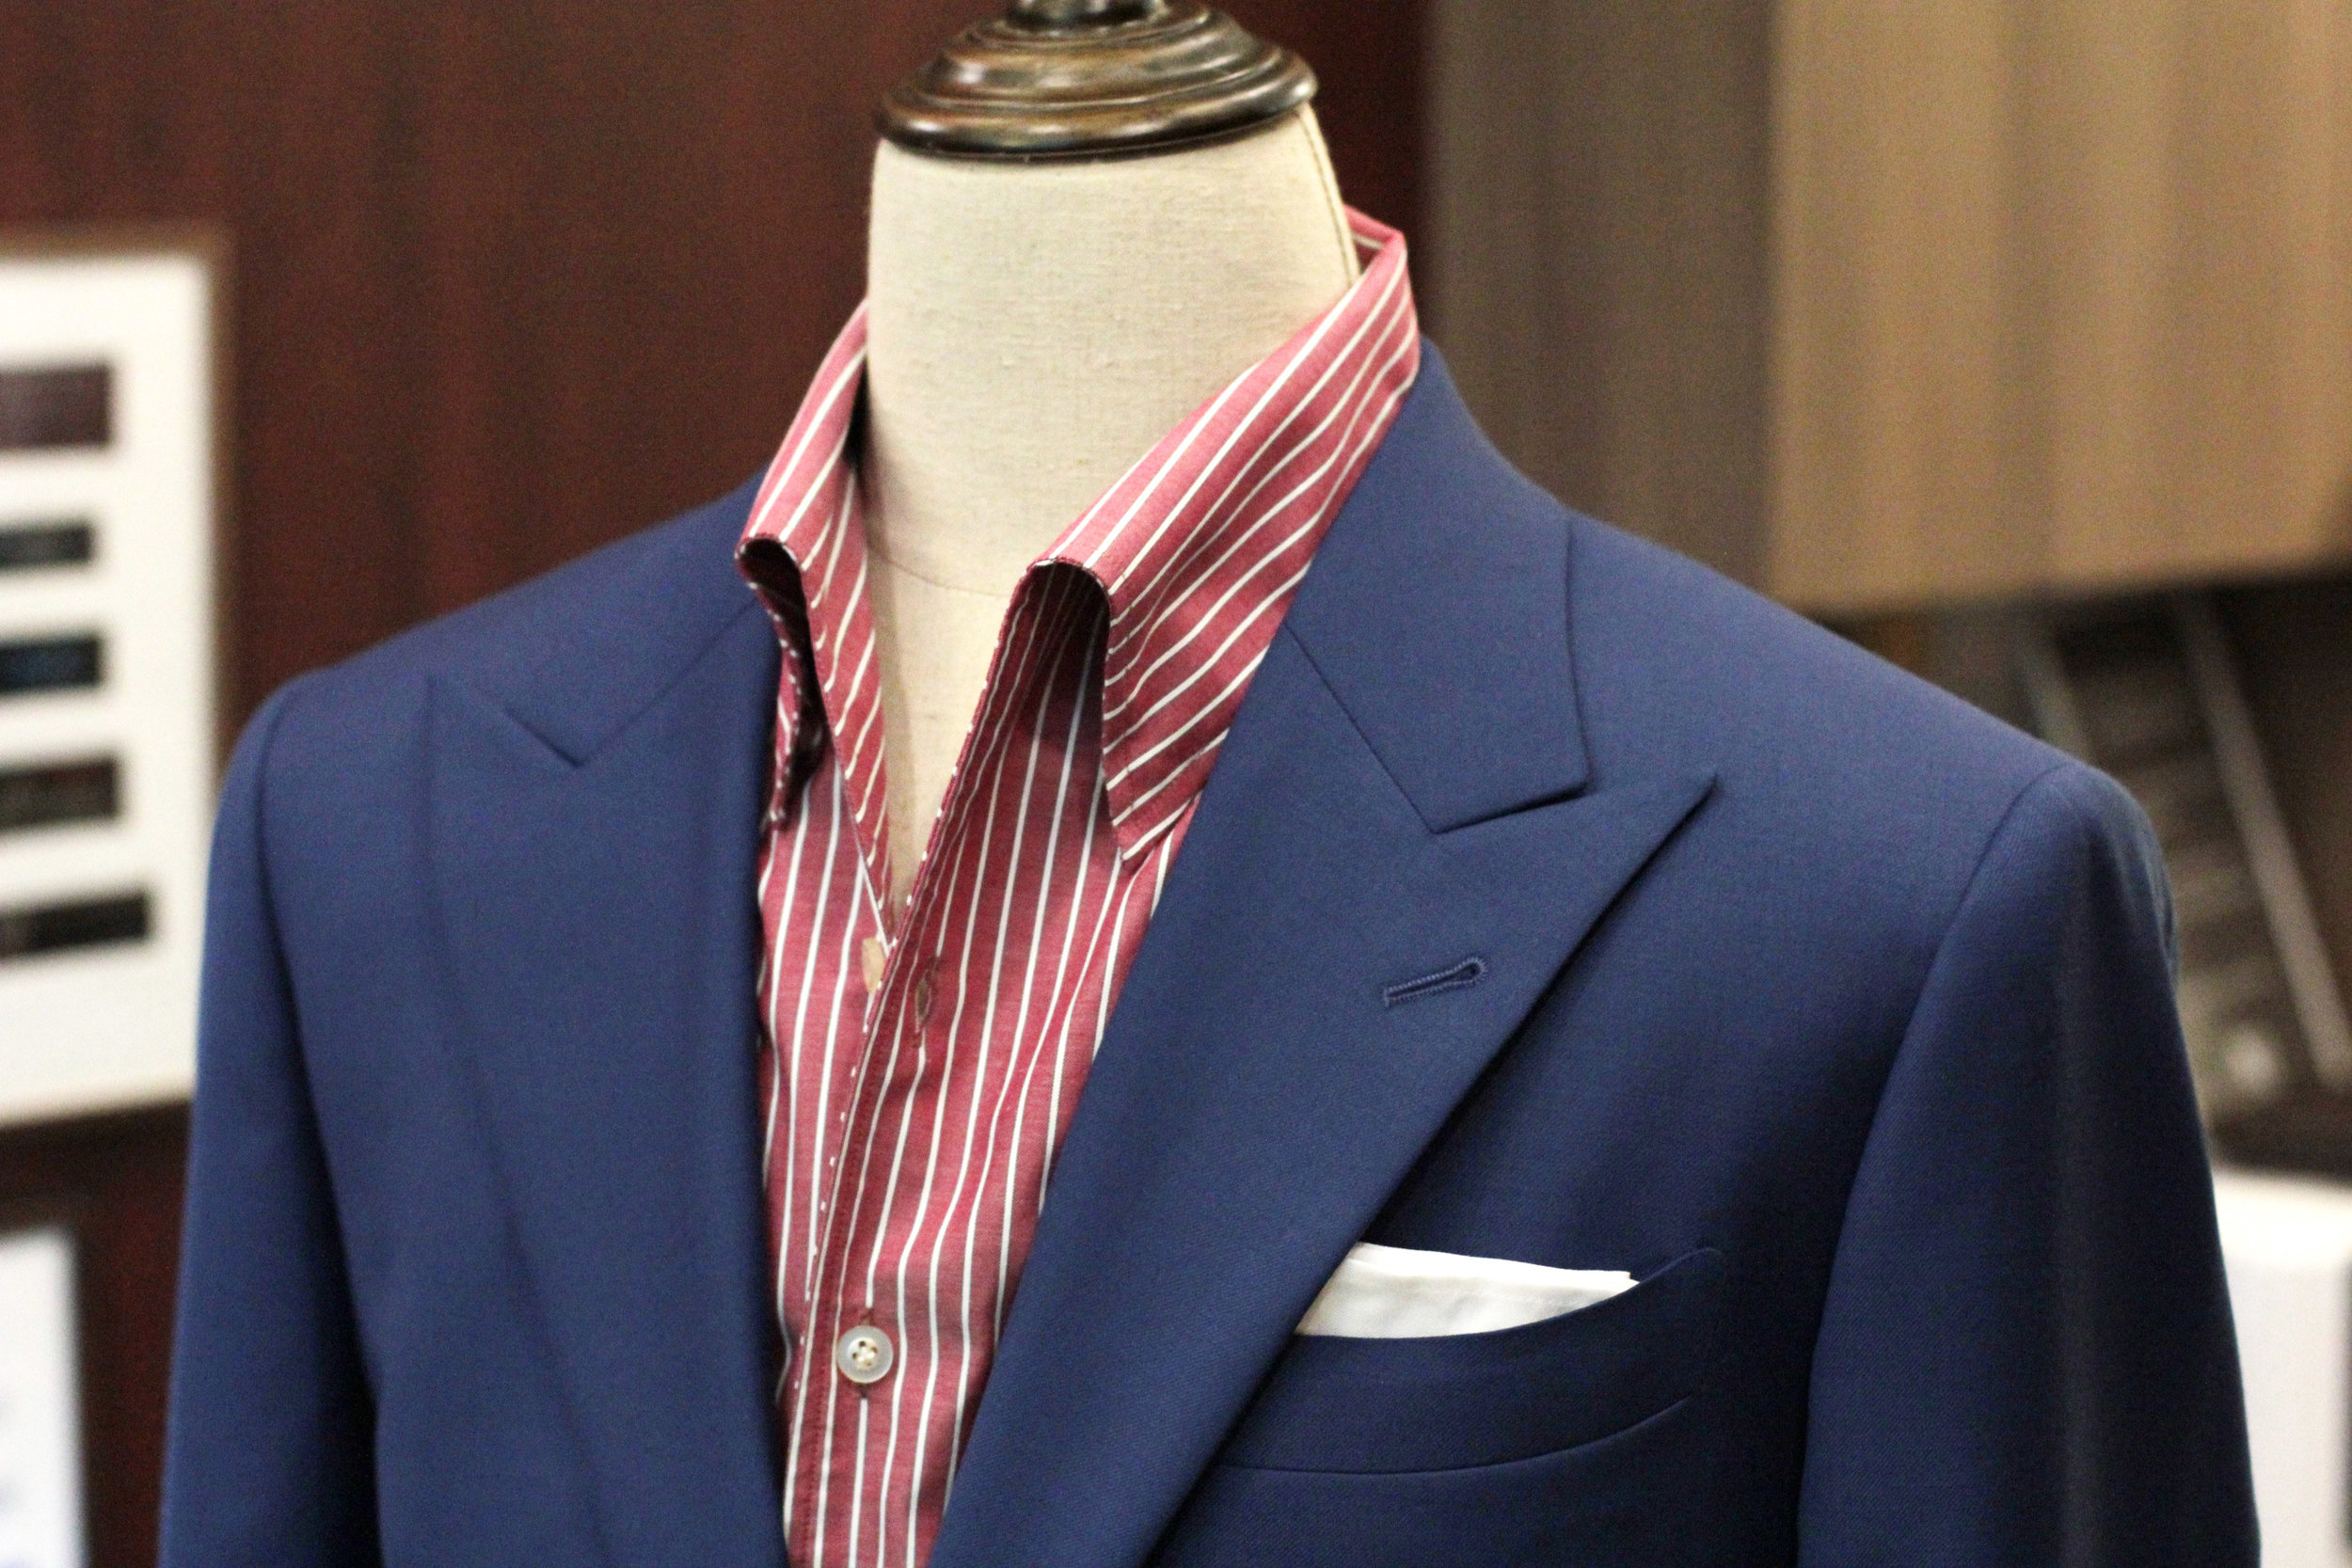 Mr Smarty   Tailor Made Suits   Made to Measure   Bespoke Suit Dino Filarte.JPG